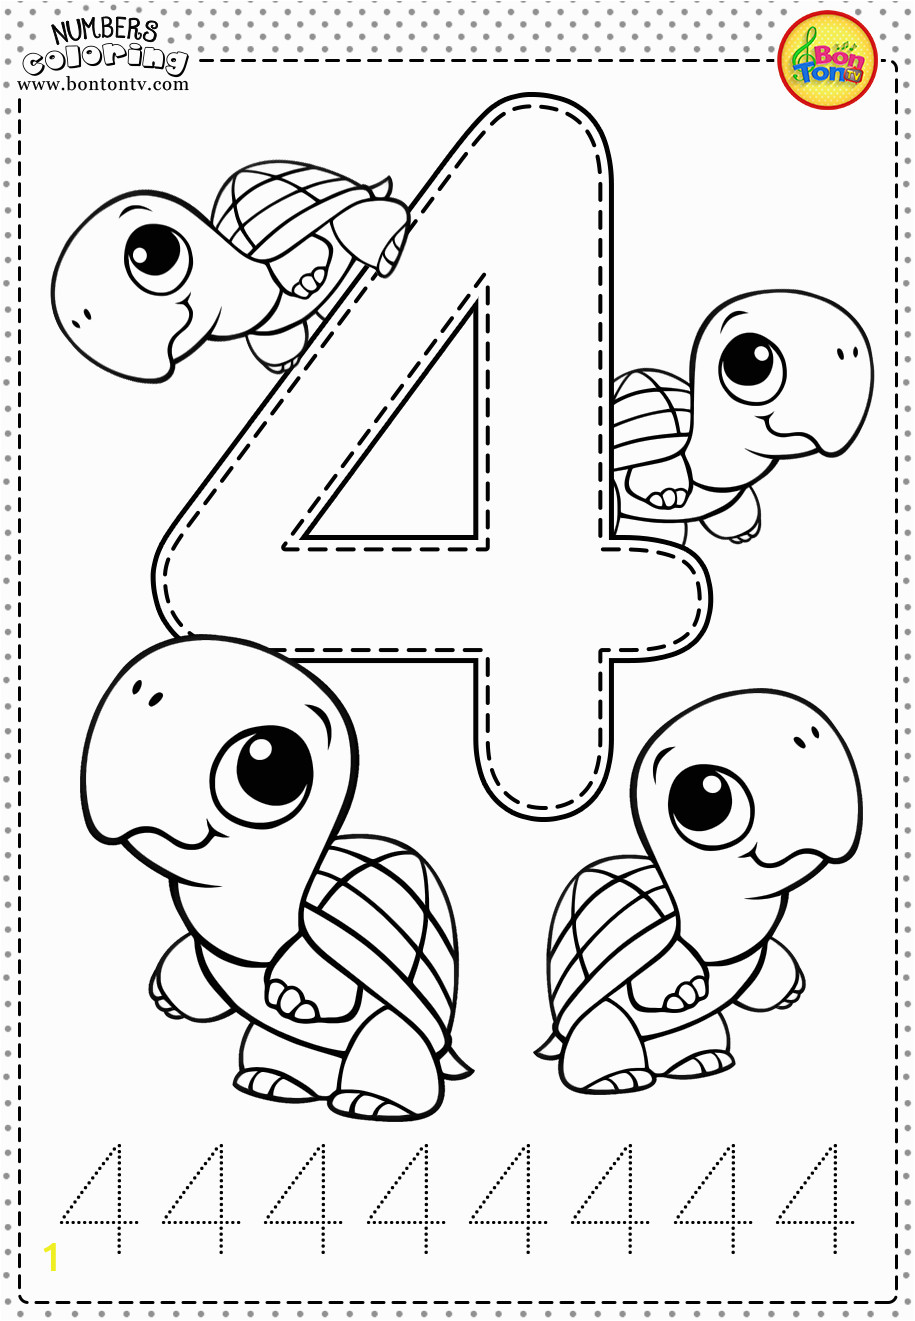 Alphabet Coloring for Grade 1 Number 4 Preschool Printables Free Worksheets and